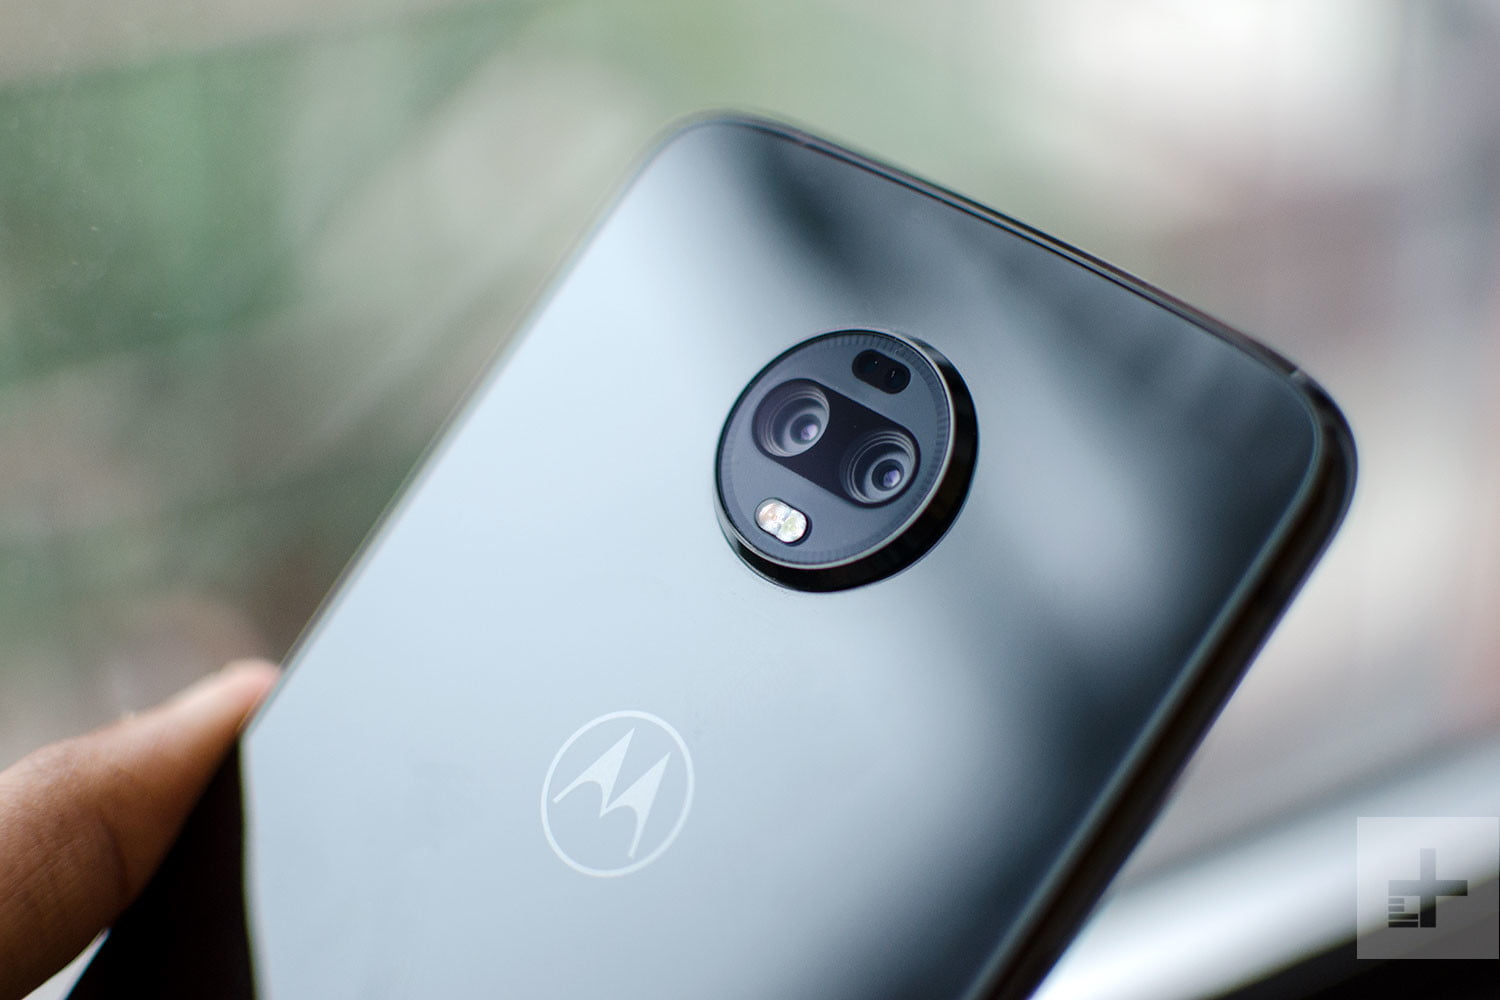 Someday it will do 5G, but the Moto Z3 is already a great phone